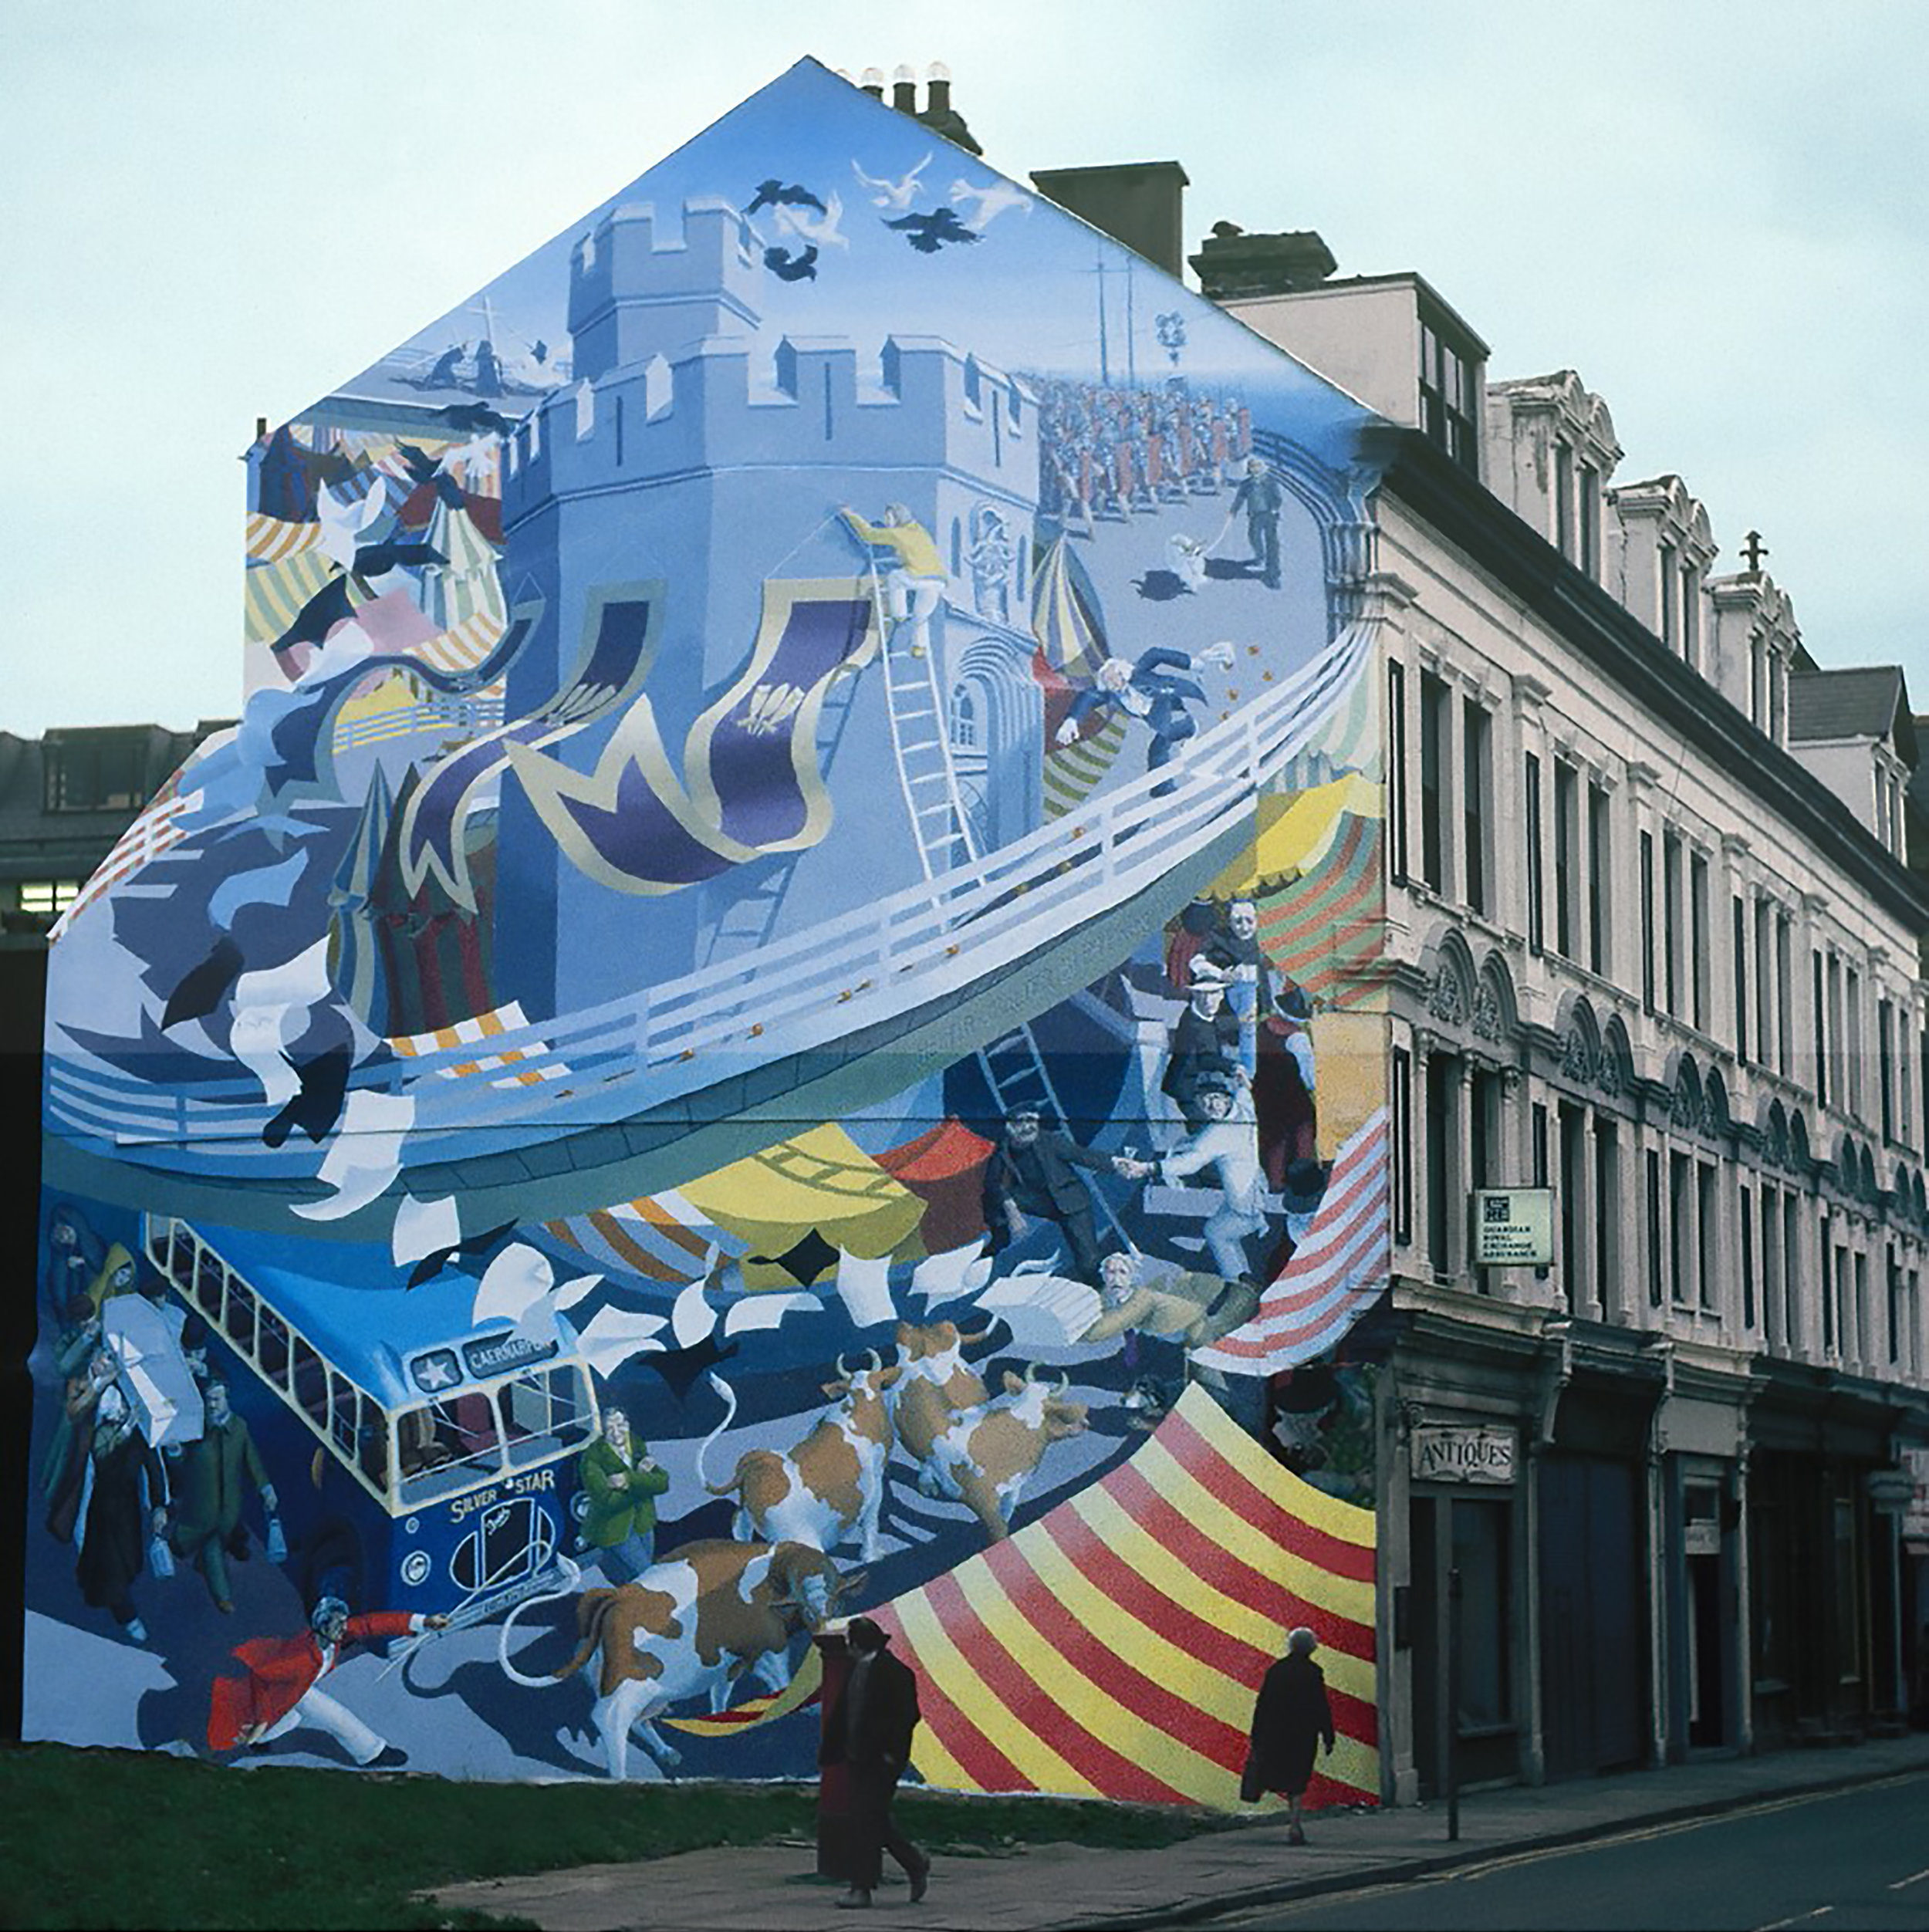 BBC Wales Interview - Povey is interviewed via Skype for a BBC WALES, S4C television program, in which he is asked about proposed plans for a restoration of his iconic Caernarfon, Wales mural HELTER SKELTER.